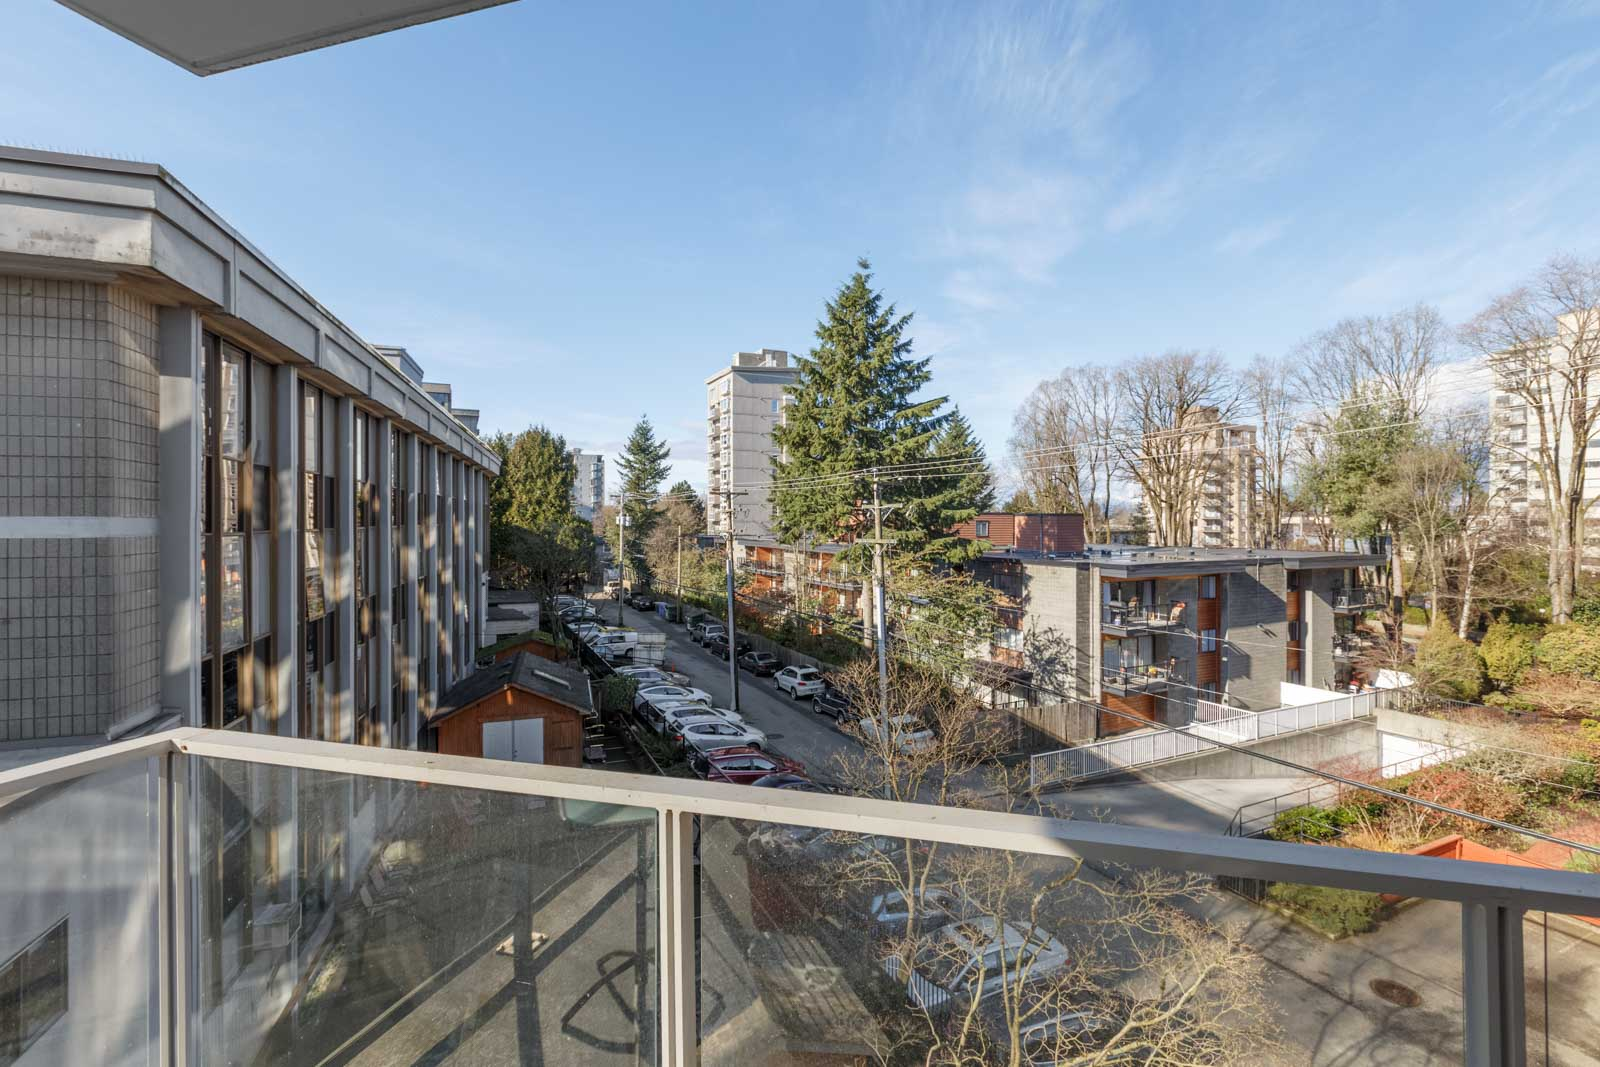 view of tree and street from balcony and its railing of a rental condo managed by birds nest properties in south granville neighbourhood of vancouver